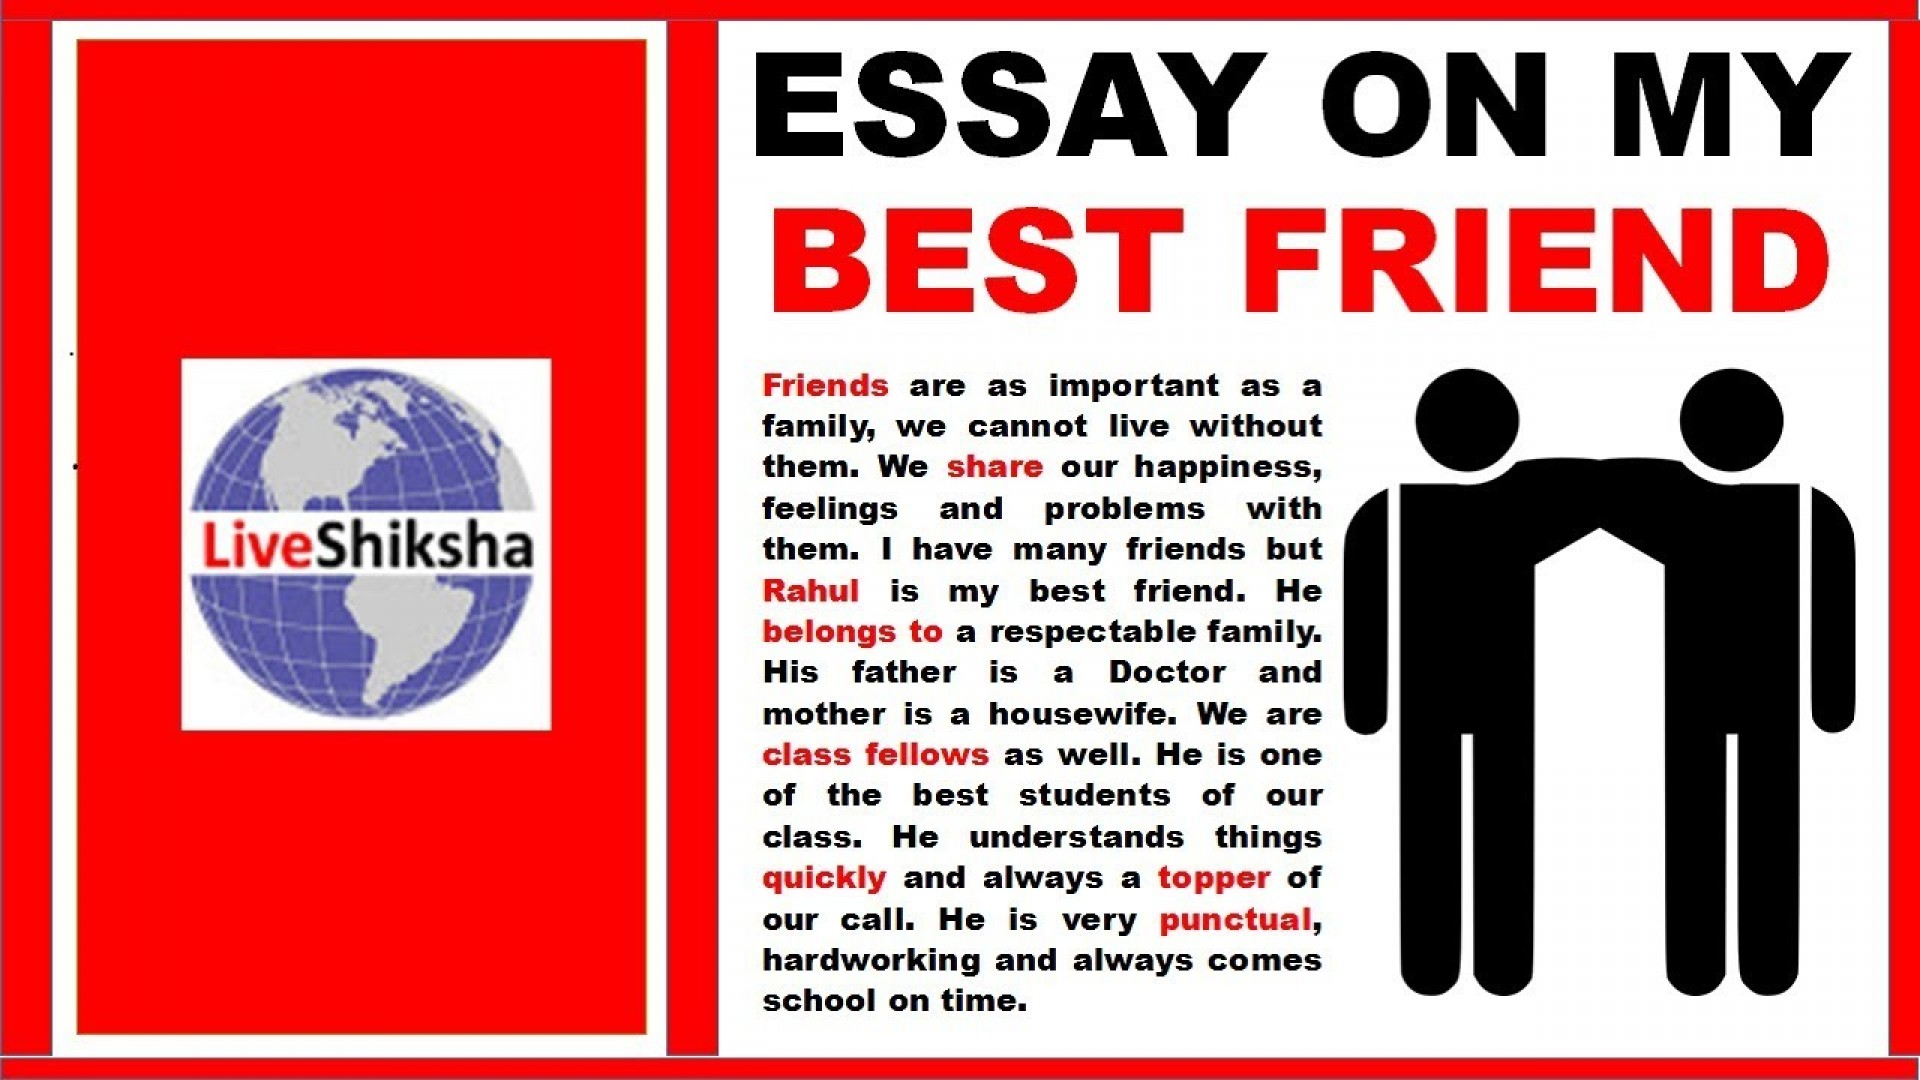 001 Maxresdefault My Best Friend Essay Marvelous For Class 10 In Hindi Short On 2nd English 7 1920